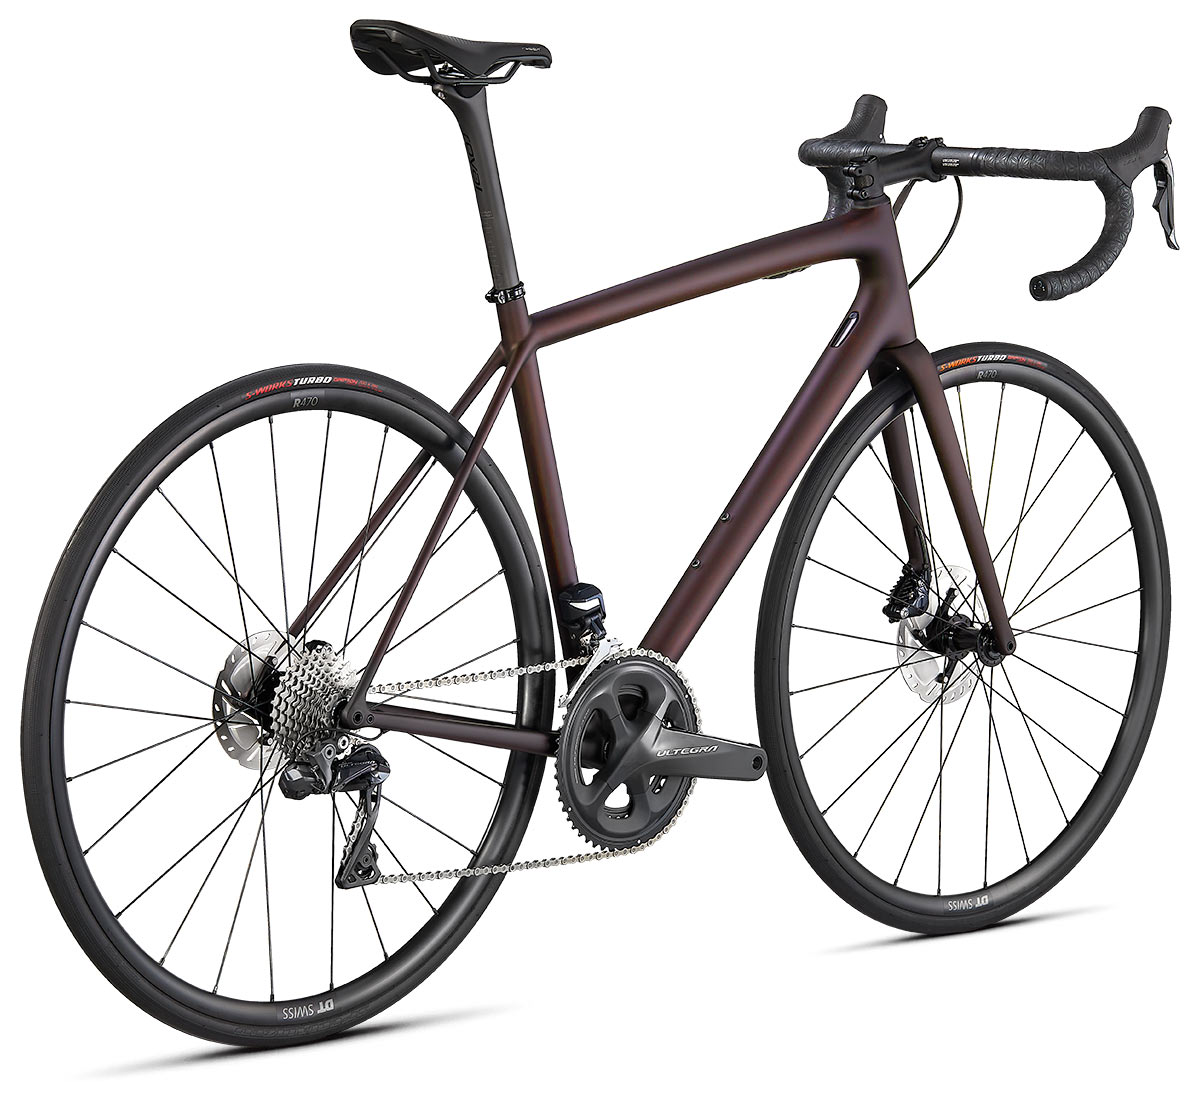 new specialized aethos lightweight carbon road bike in expert build trim and red tint paint scheme